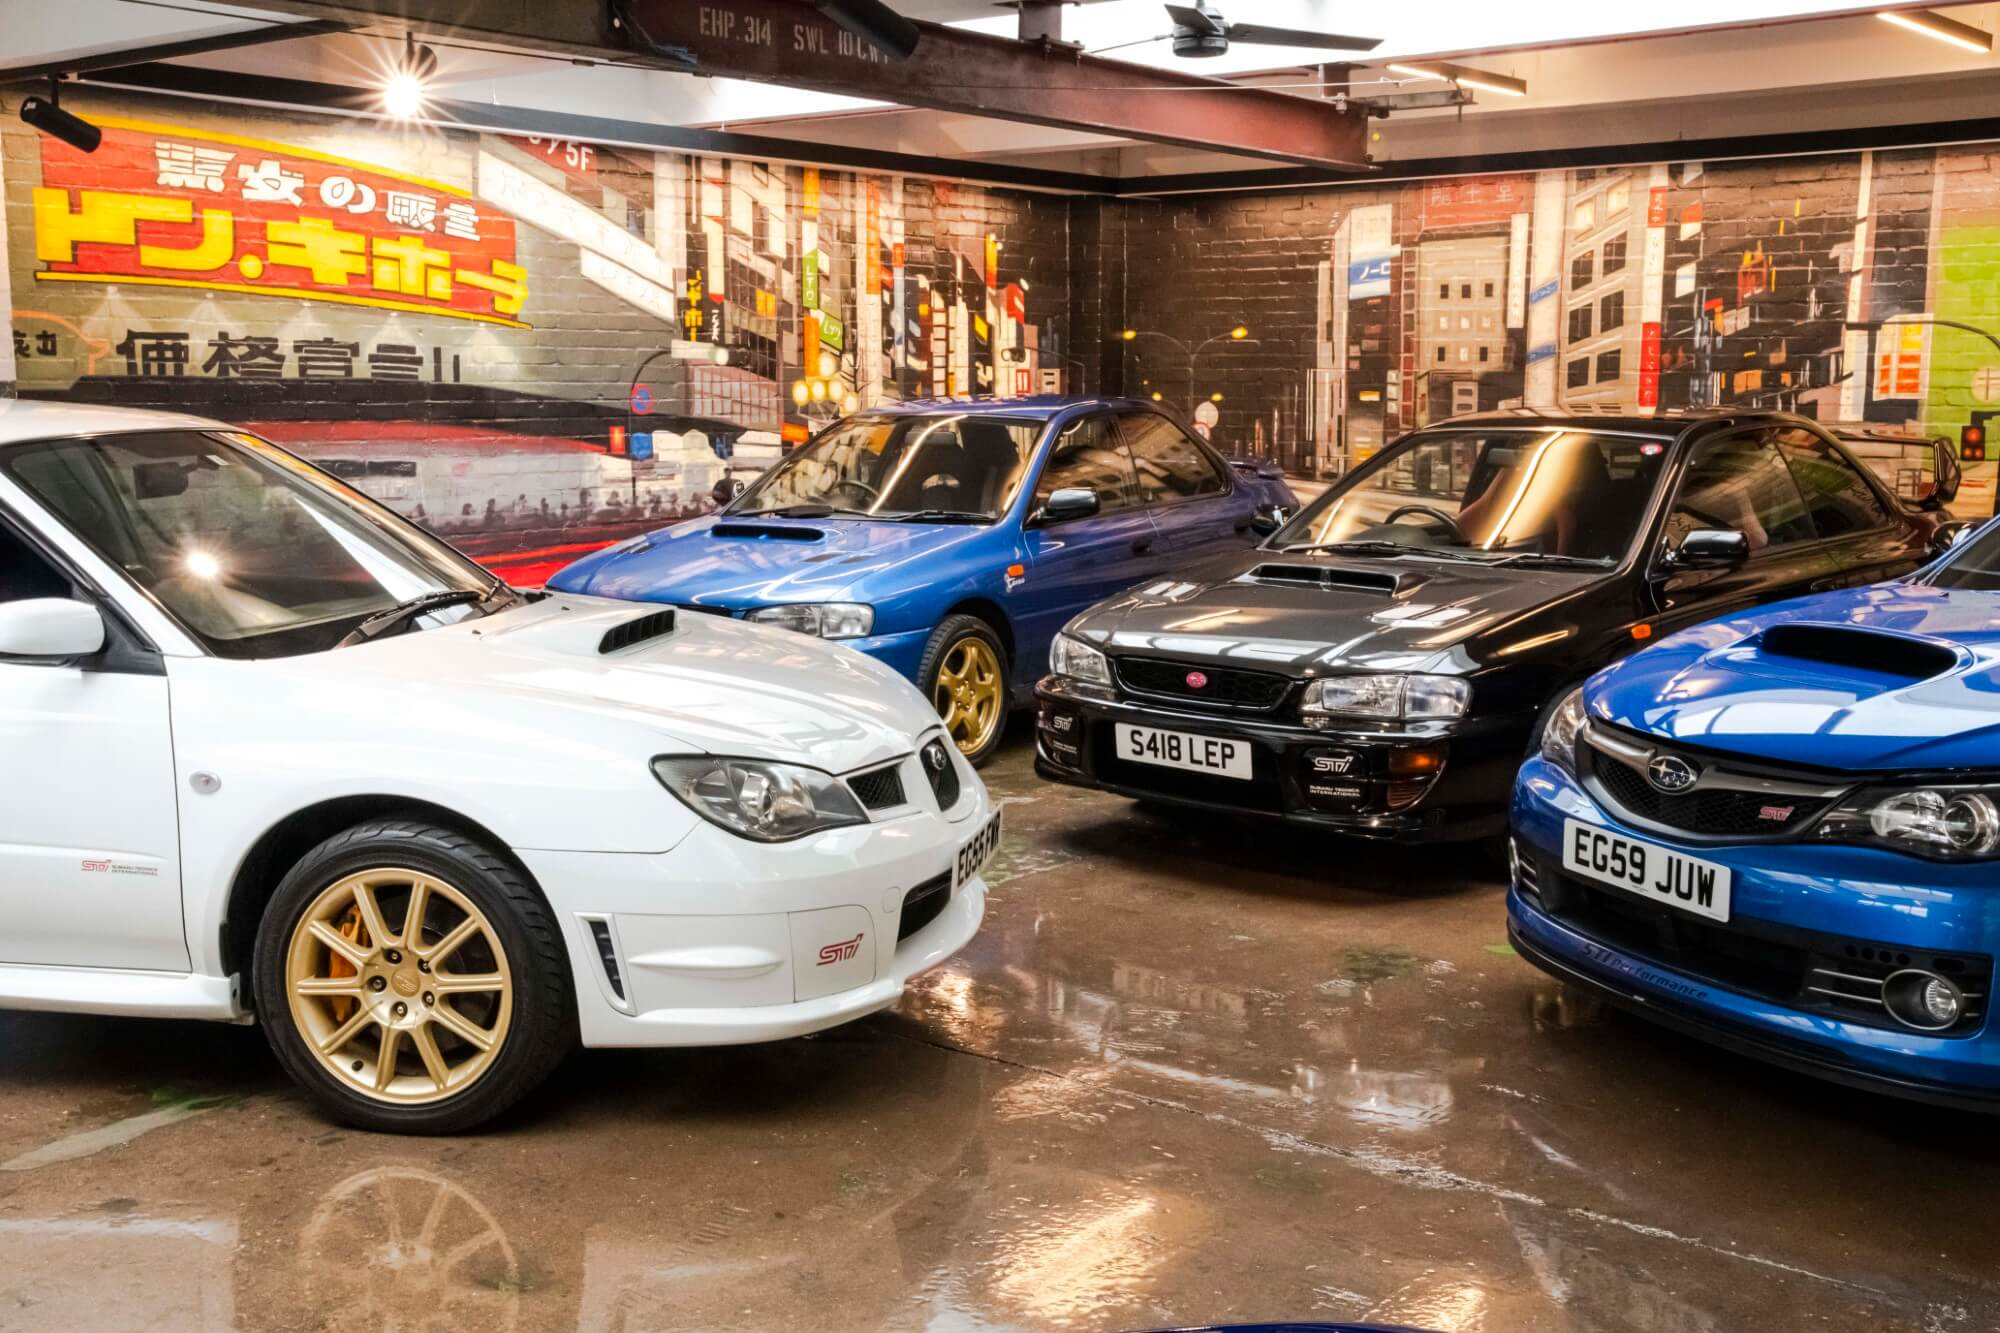 We Buy Cars Fairmont Sports And Classics - Fairmont Sports and Classics Ltd